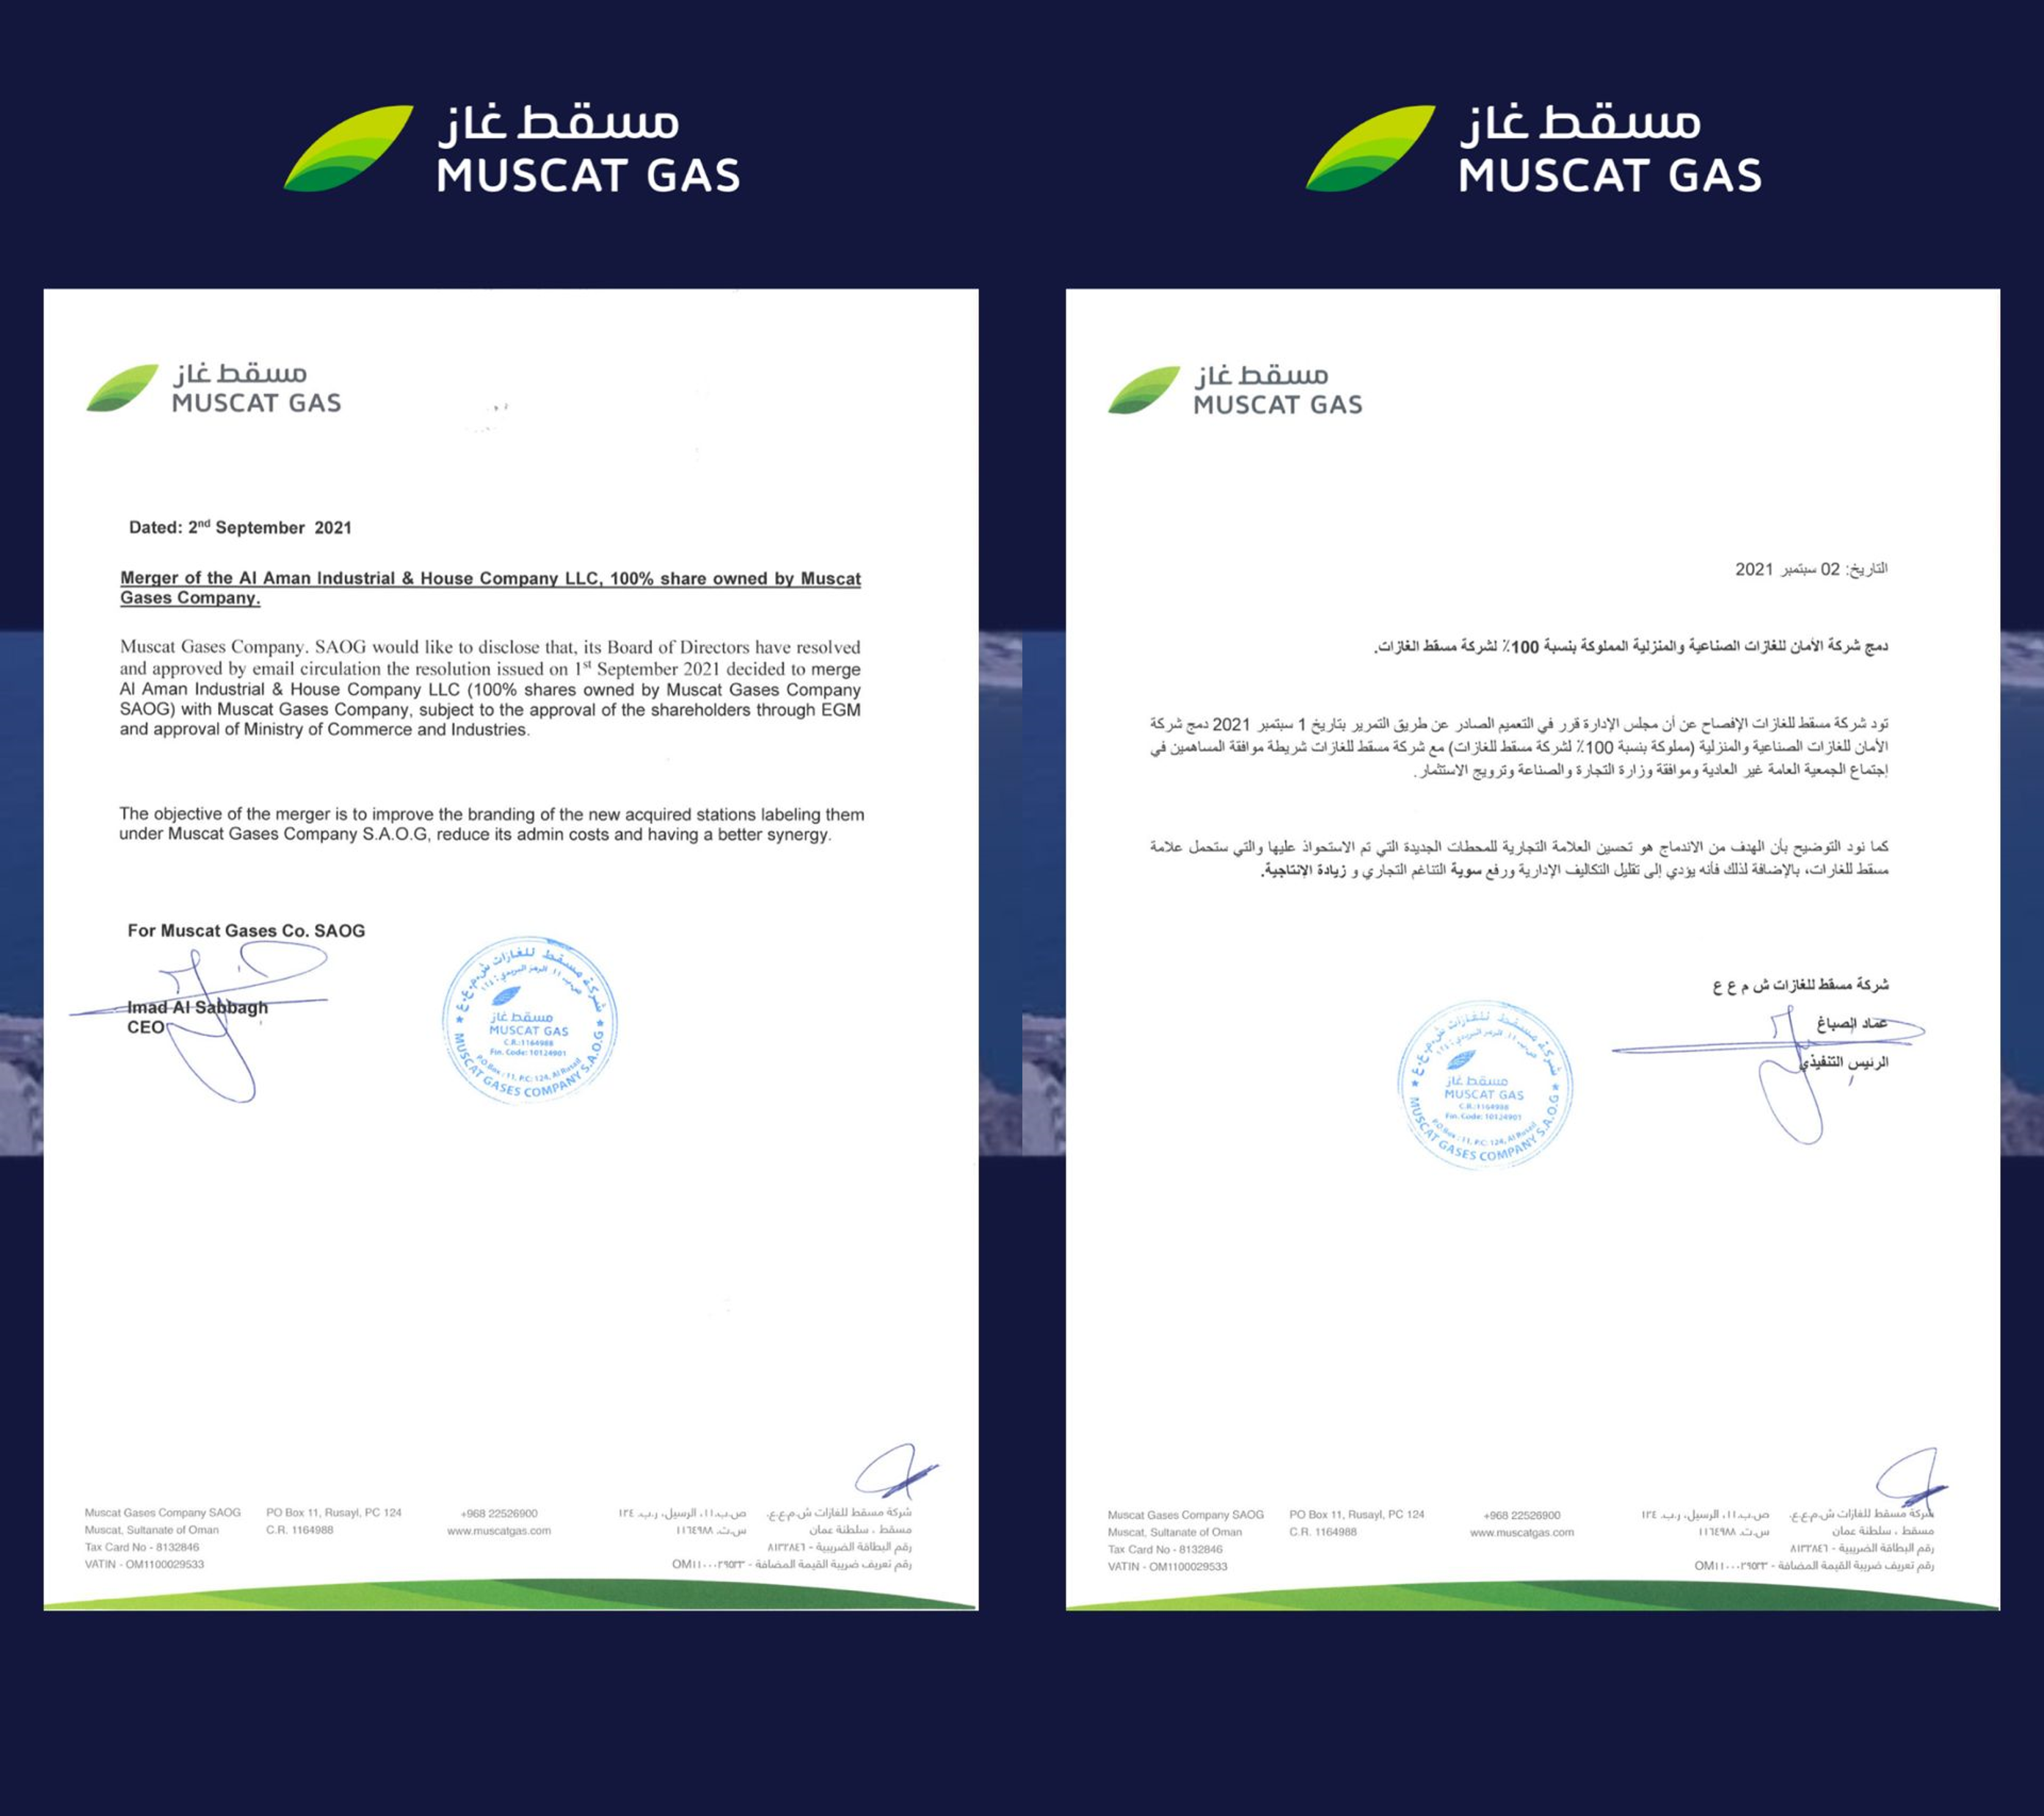 The merger of Al-Aman Company for Industrial and Household Gases, which is 100% owned by Muscat Gases Company image